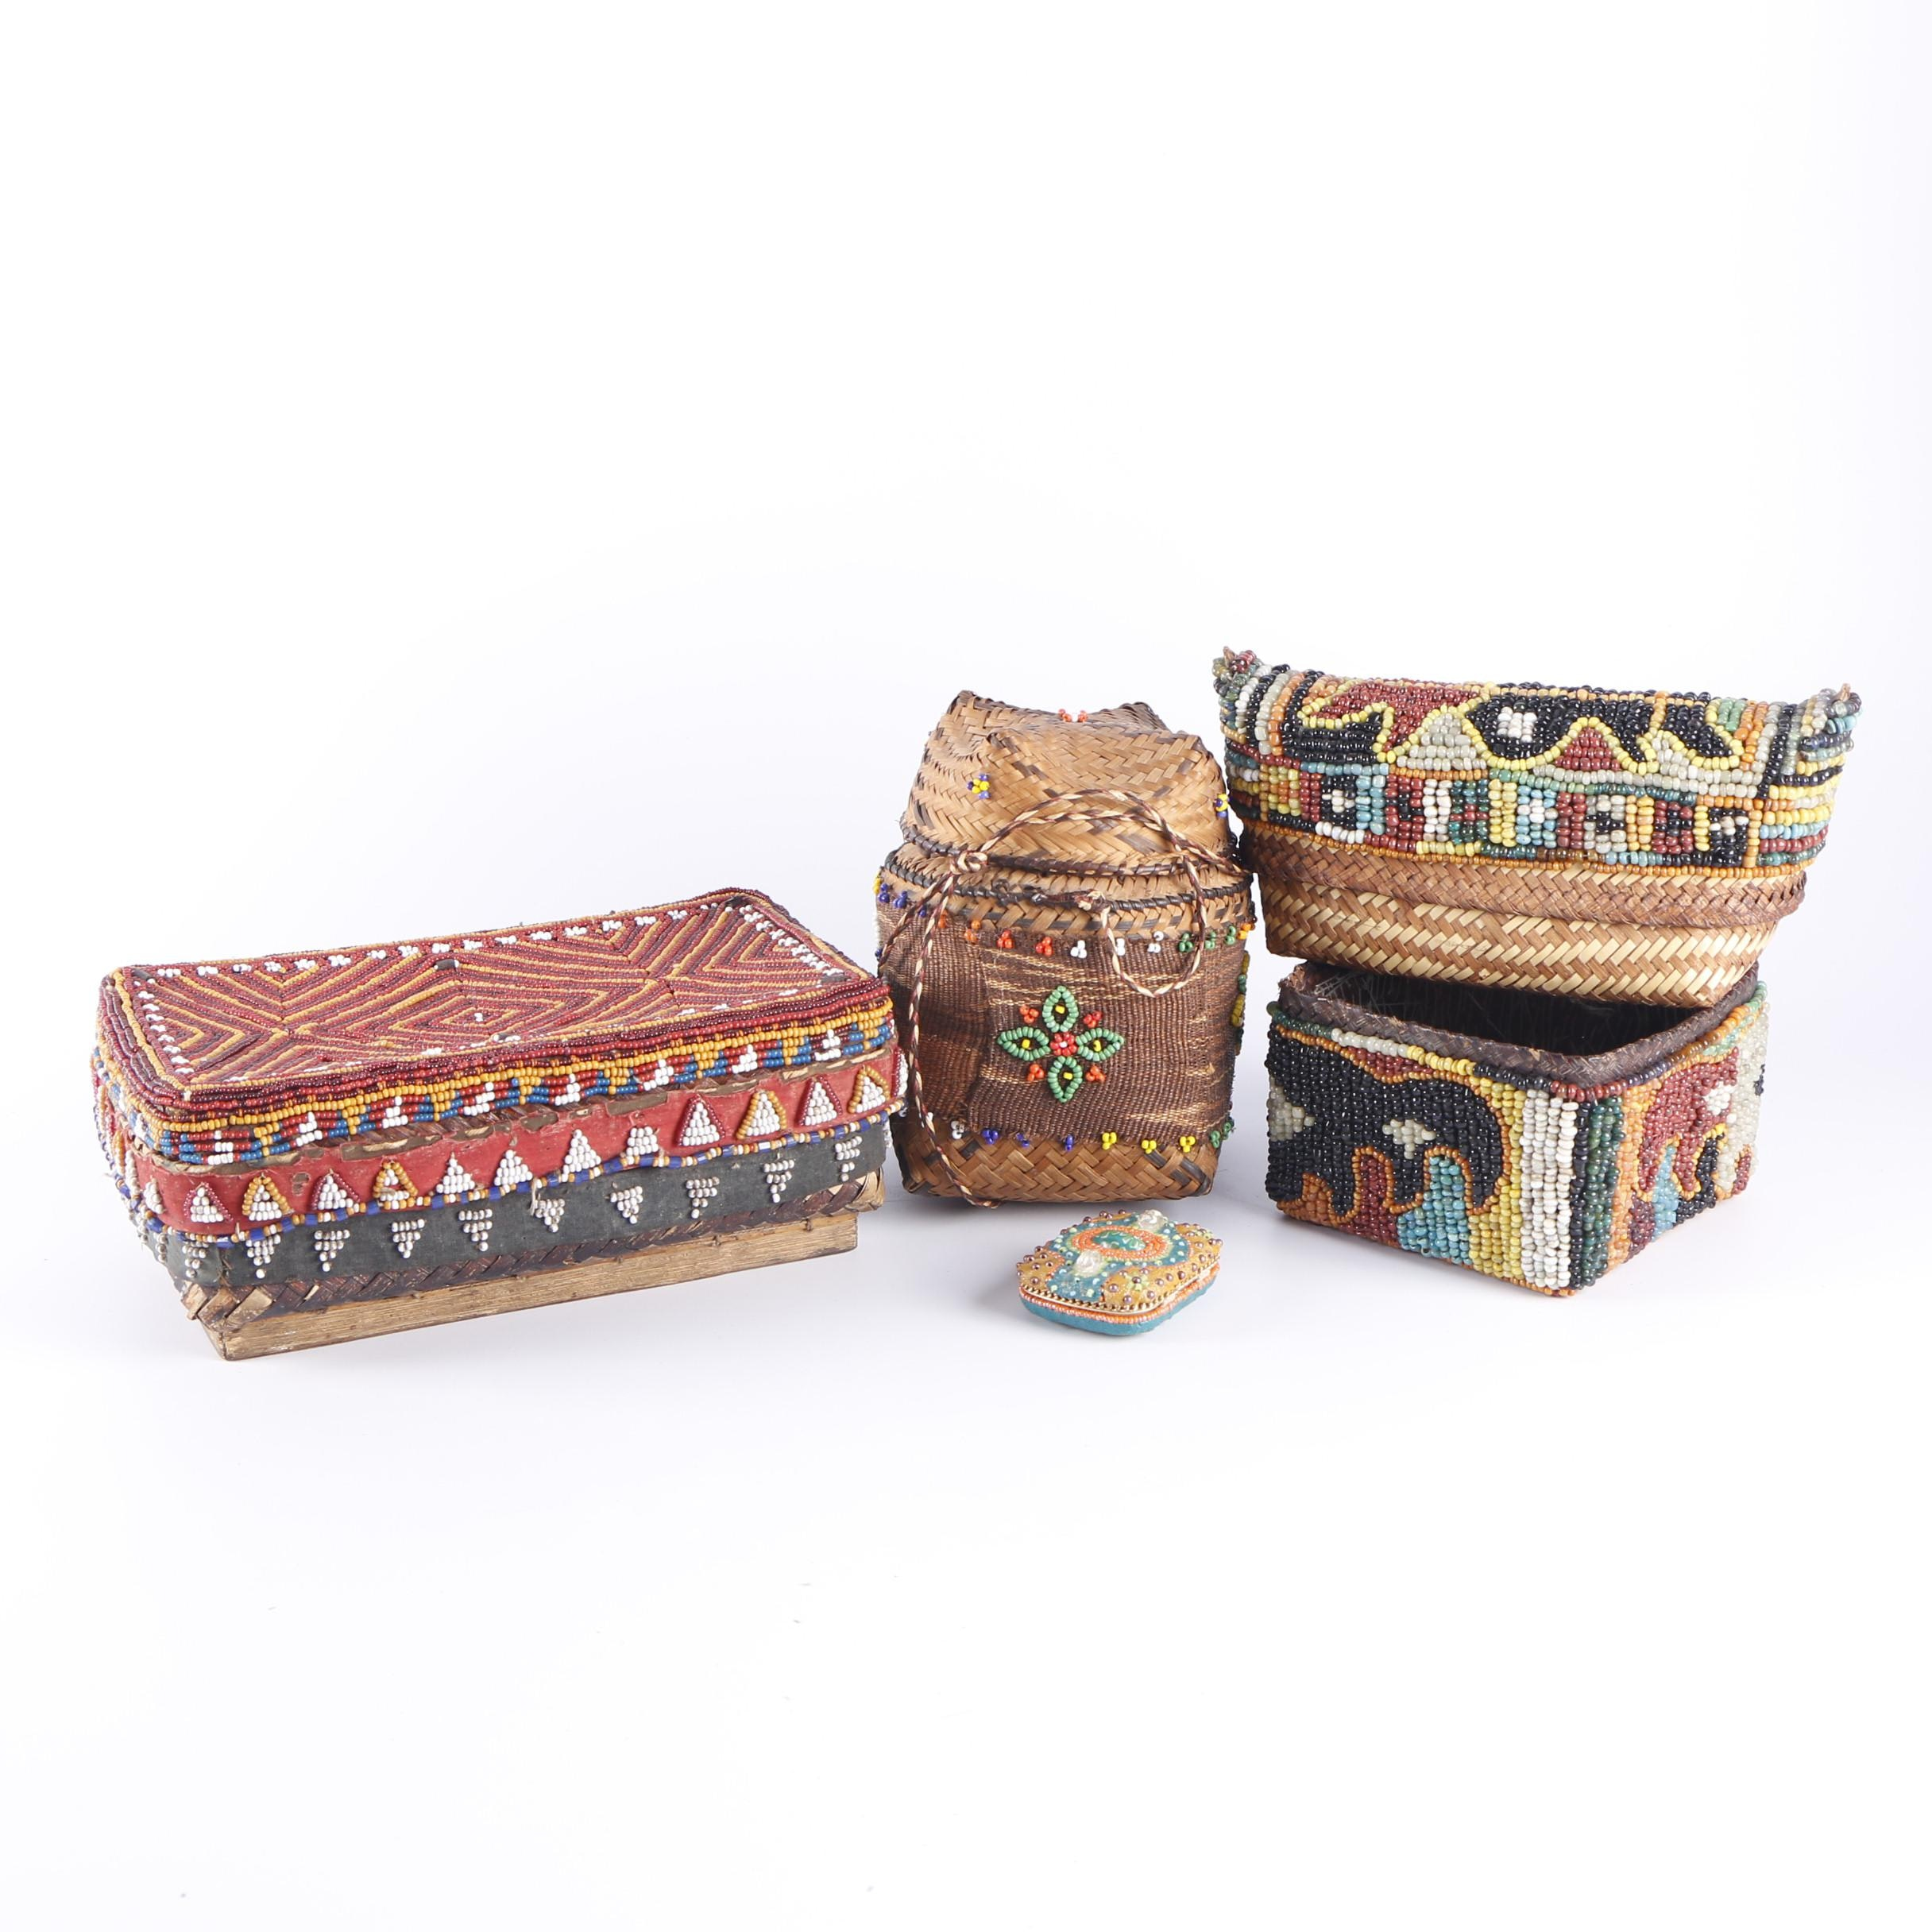 Vintage African Inspired Handwoven Beaded Baskets